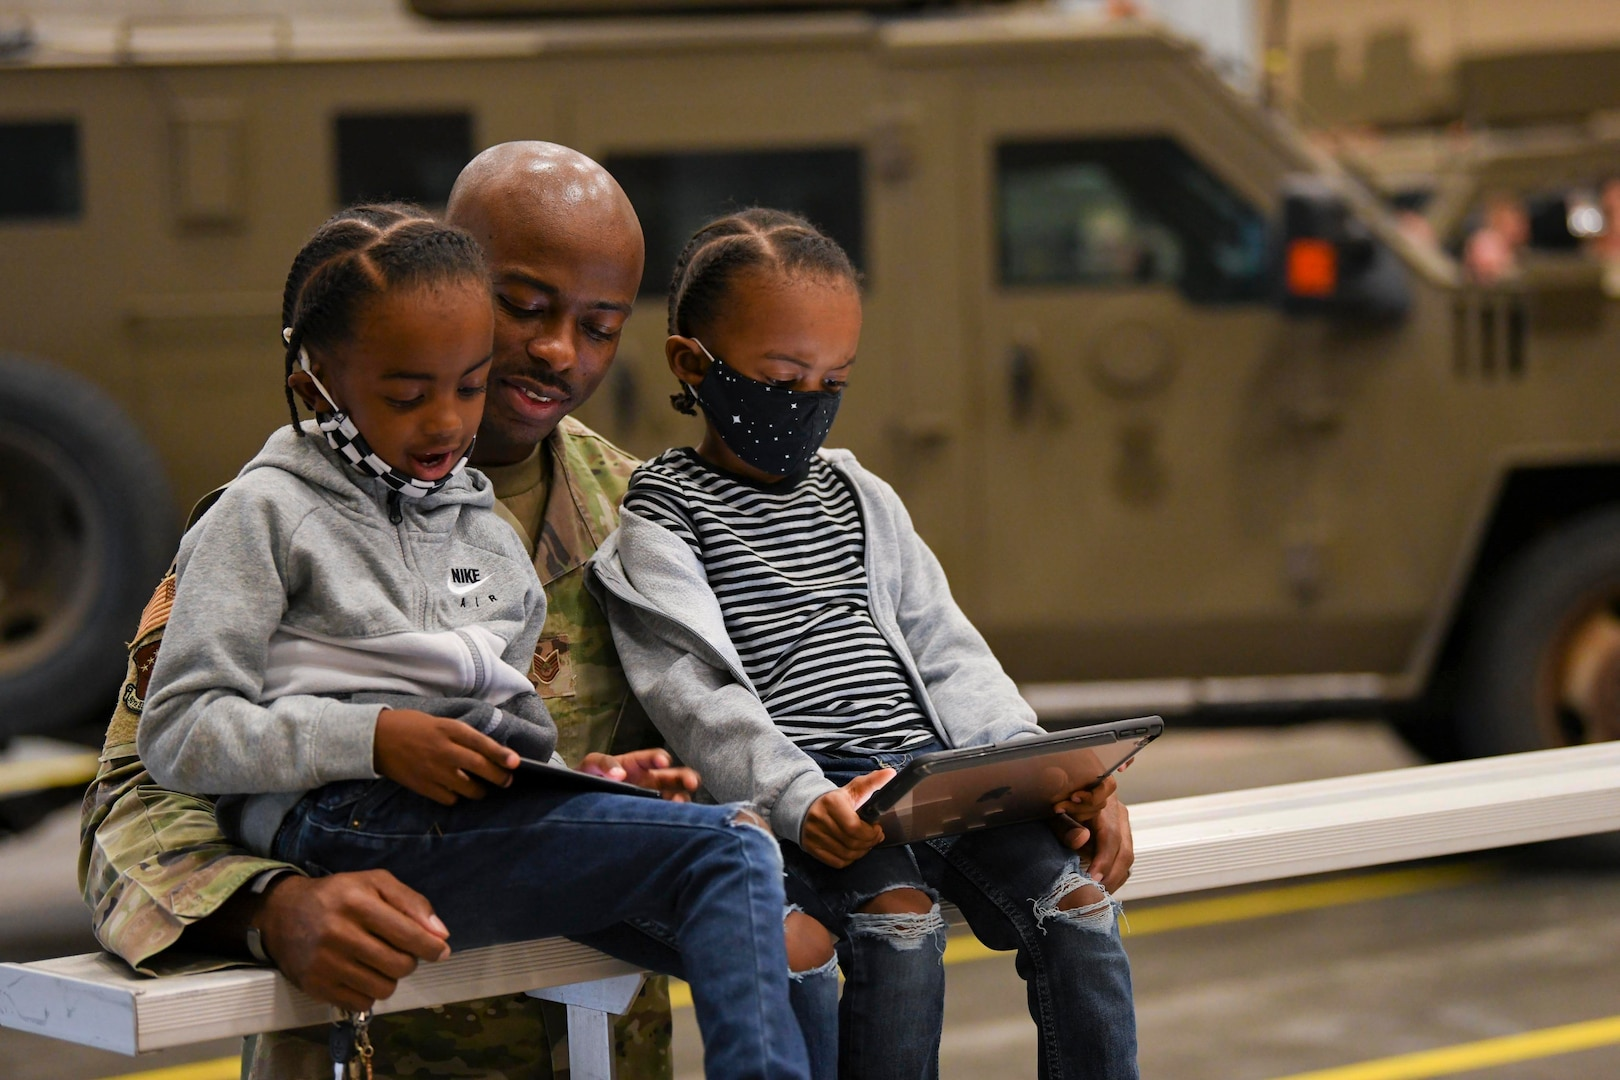 An airman stands behind two seated children looking at tablets.